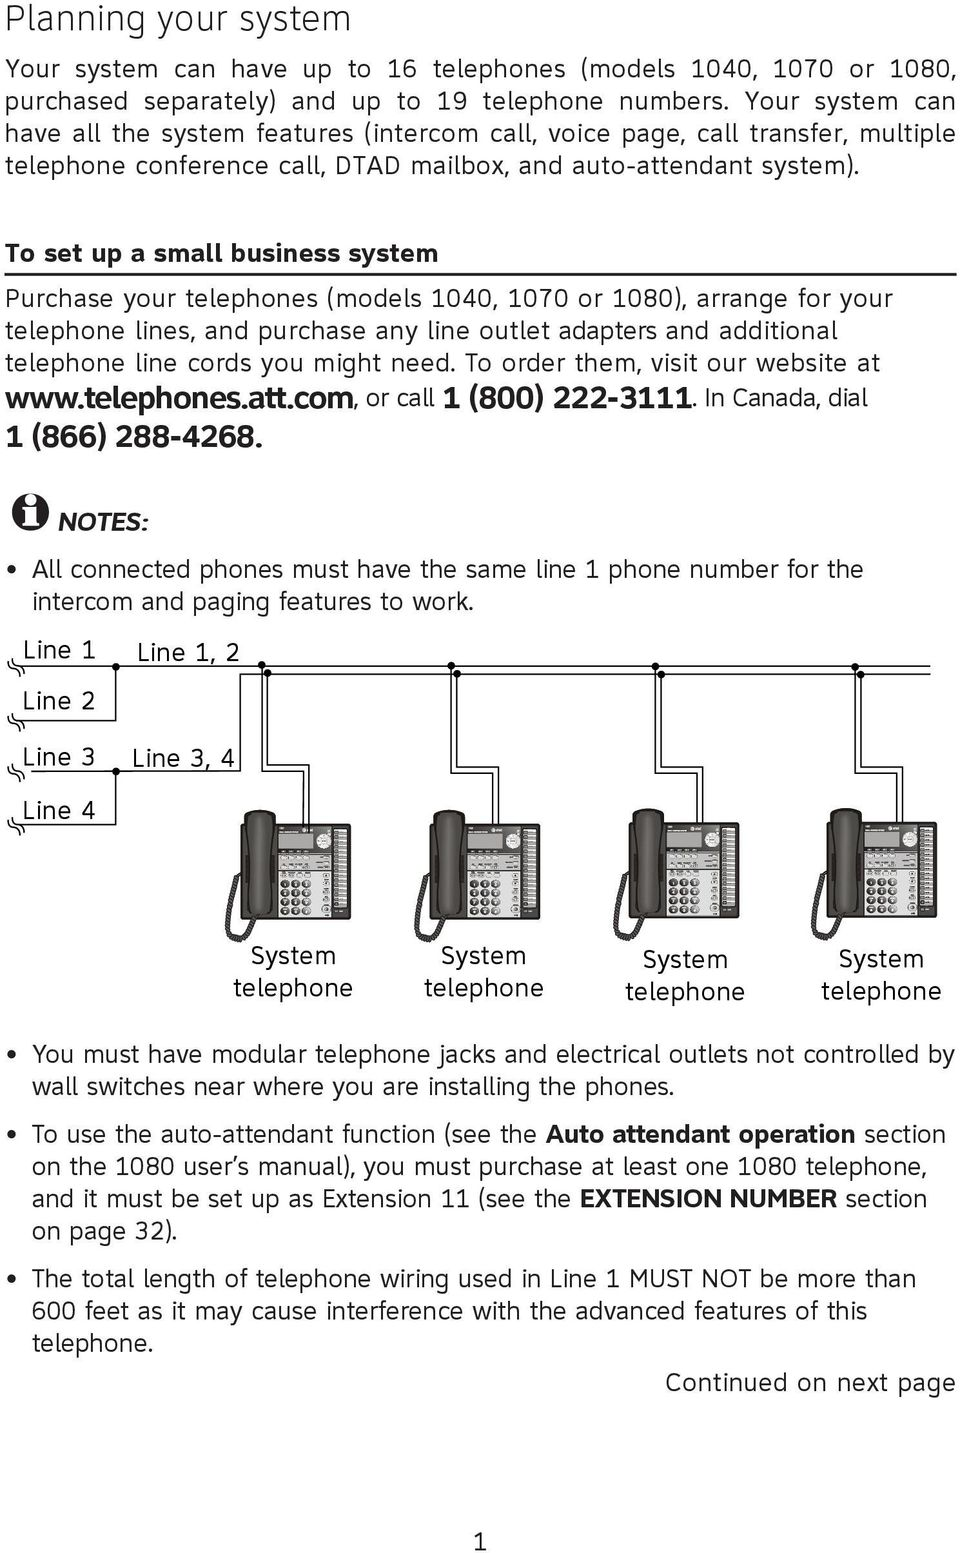 To set up a small business system Purchase your telephones (models 1040, 1070 or 1080), arrange for your telephone lines, and purchase any line outlet adapters and additional telephone line cords you